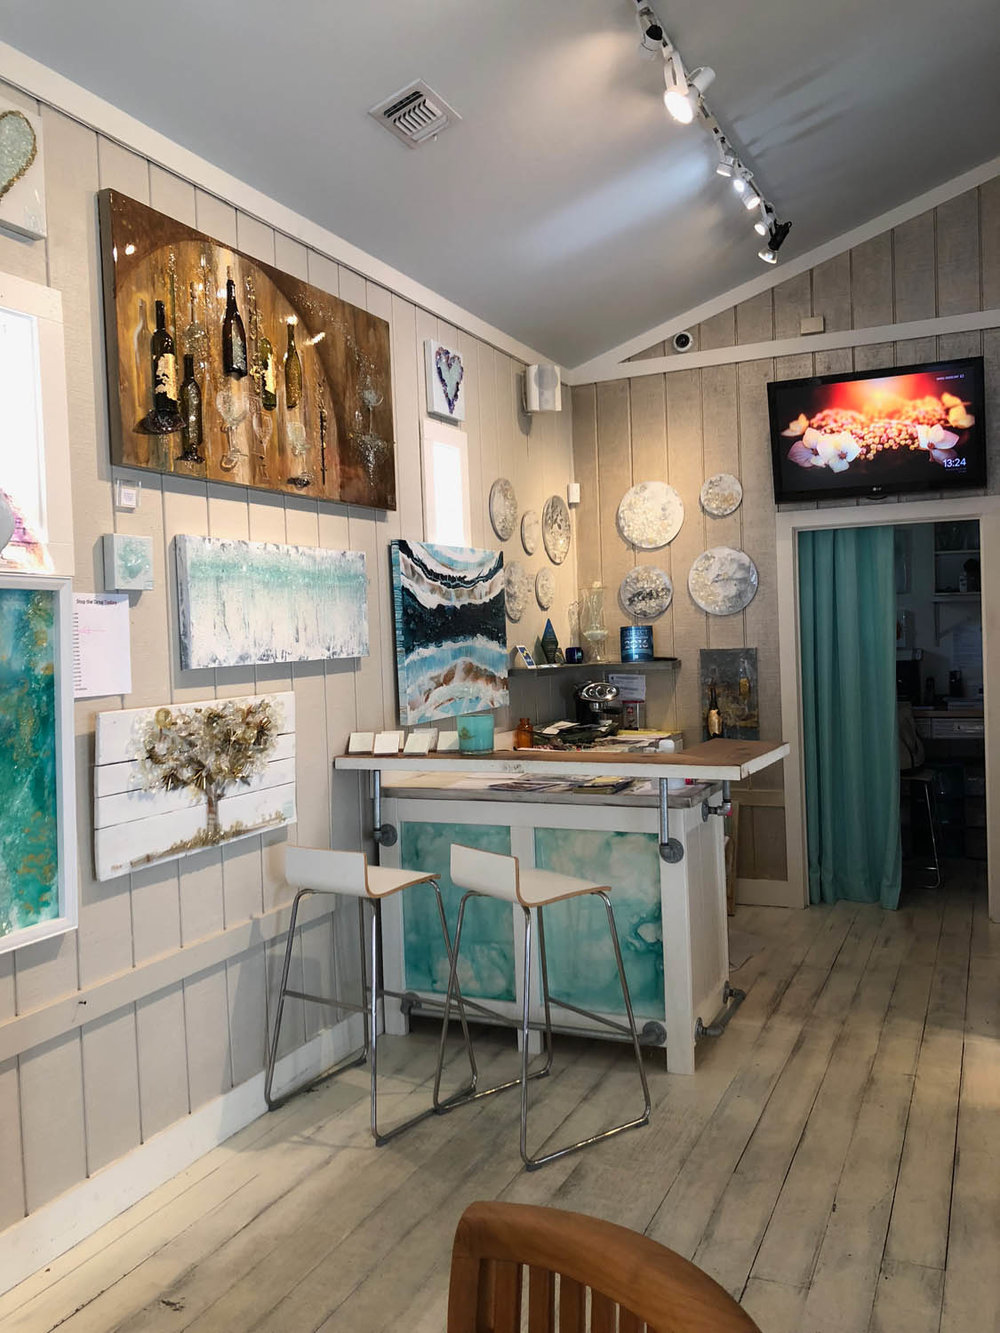 Mary Hong art glass studio in Grayton Beach, Florida